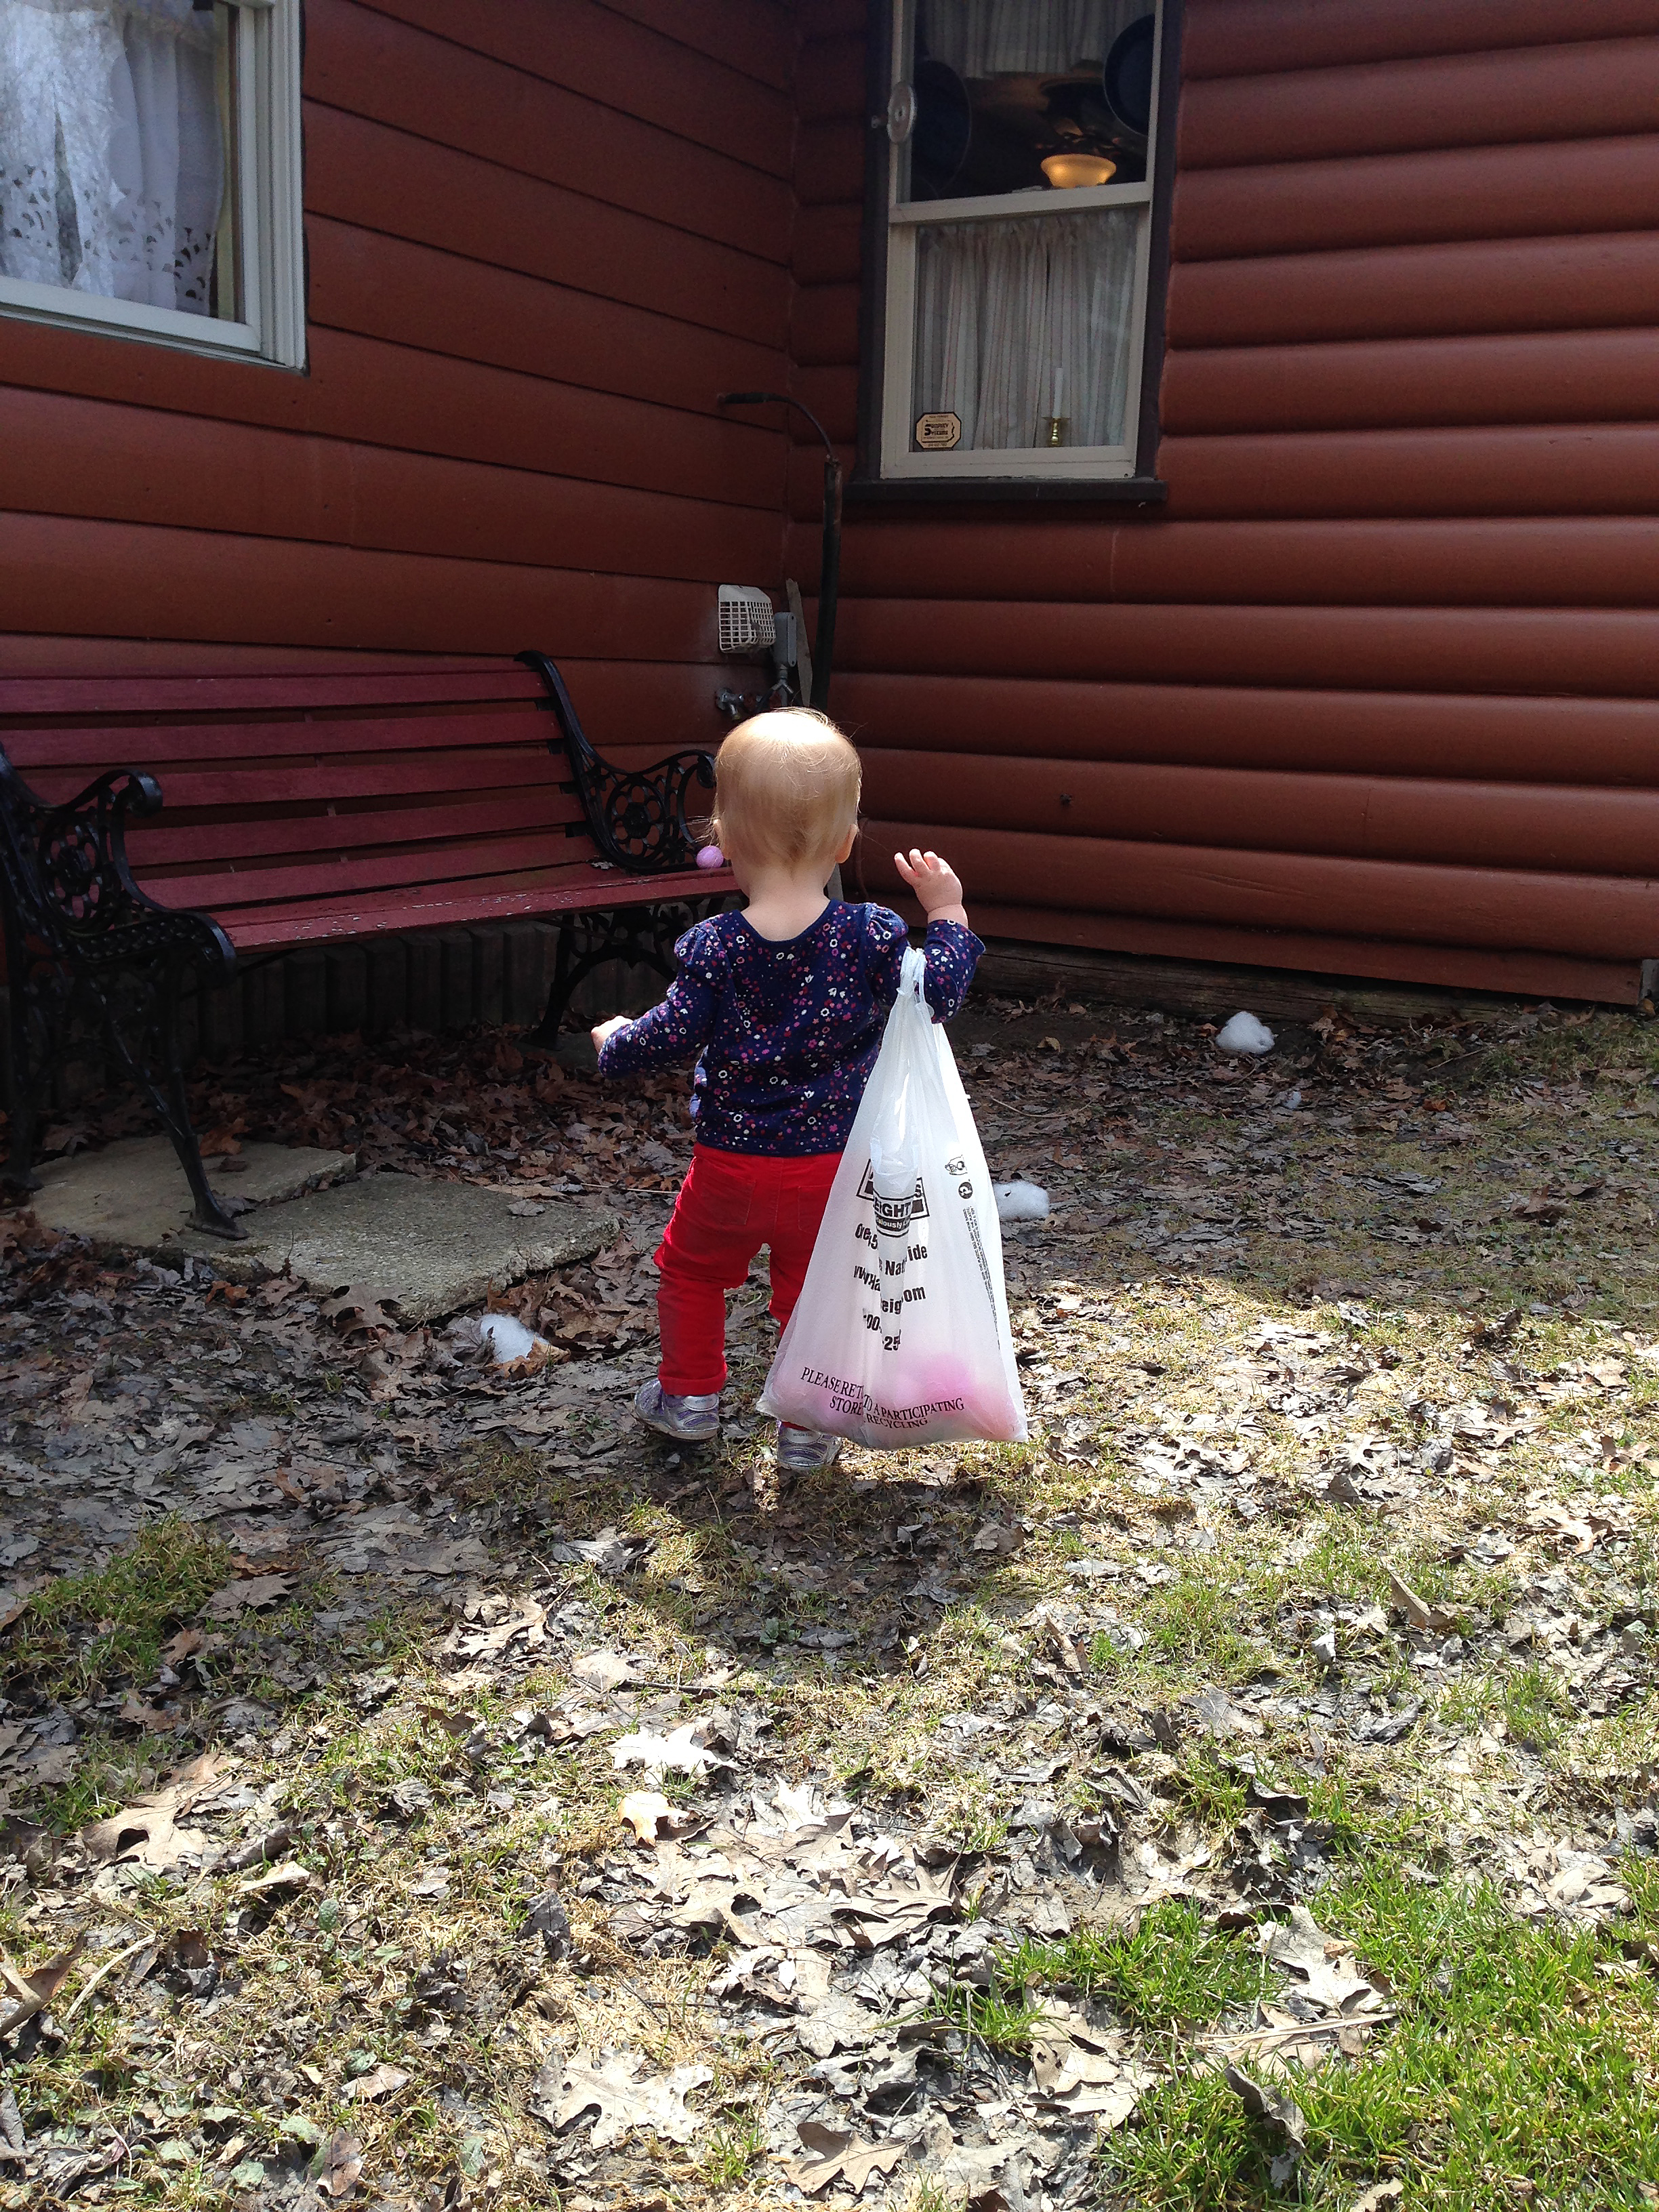 Hunting. The Bag Is Nearly As Big As She Is.